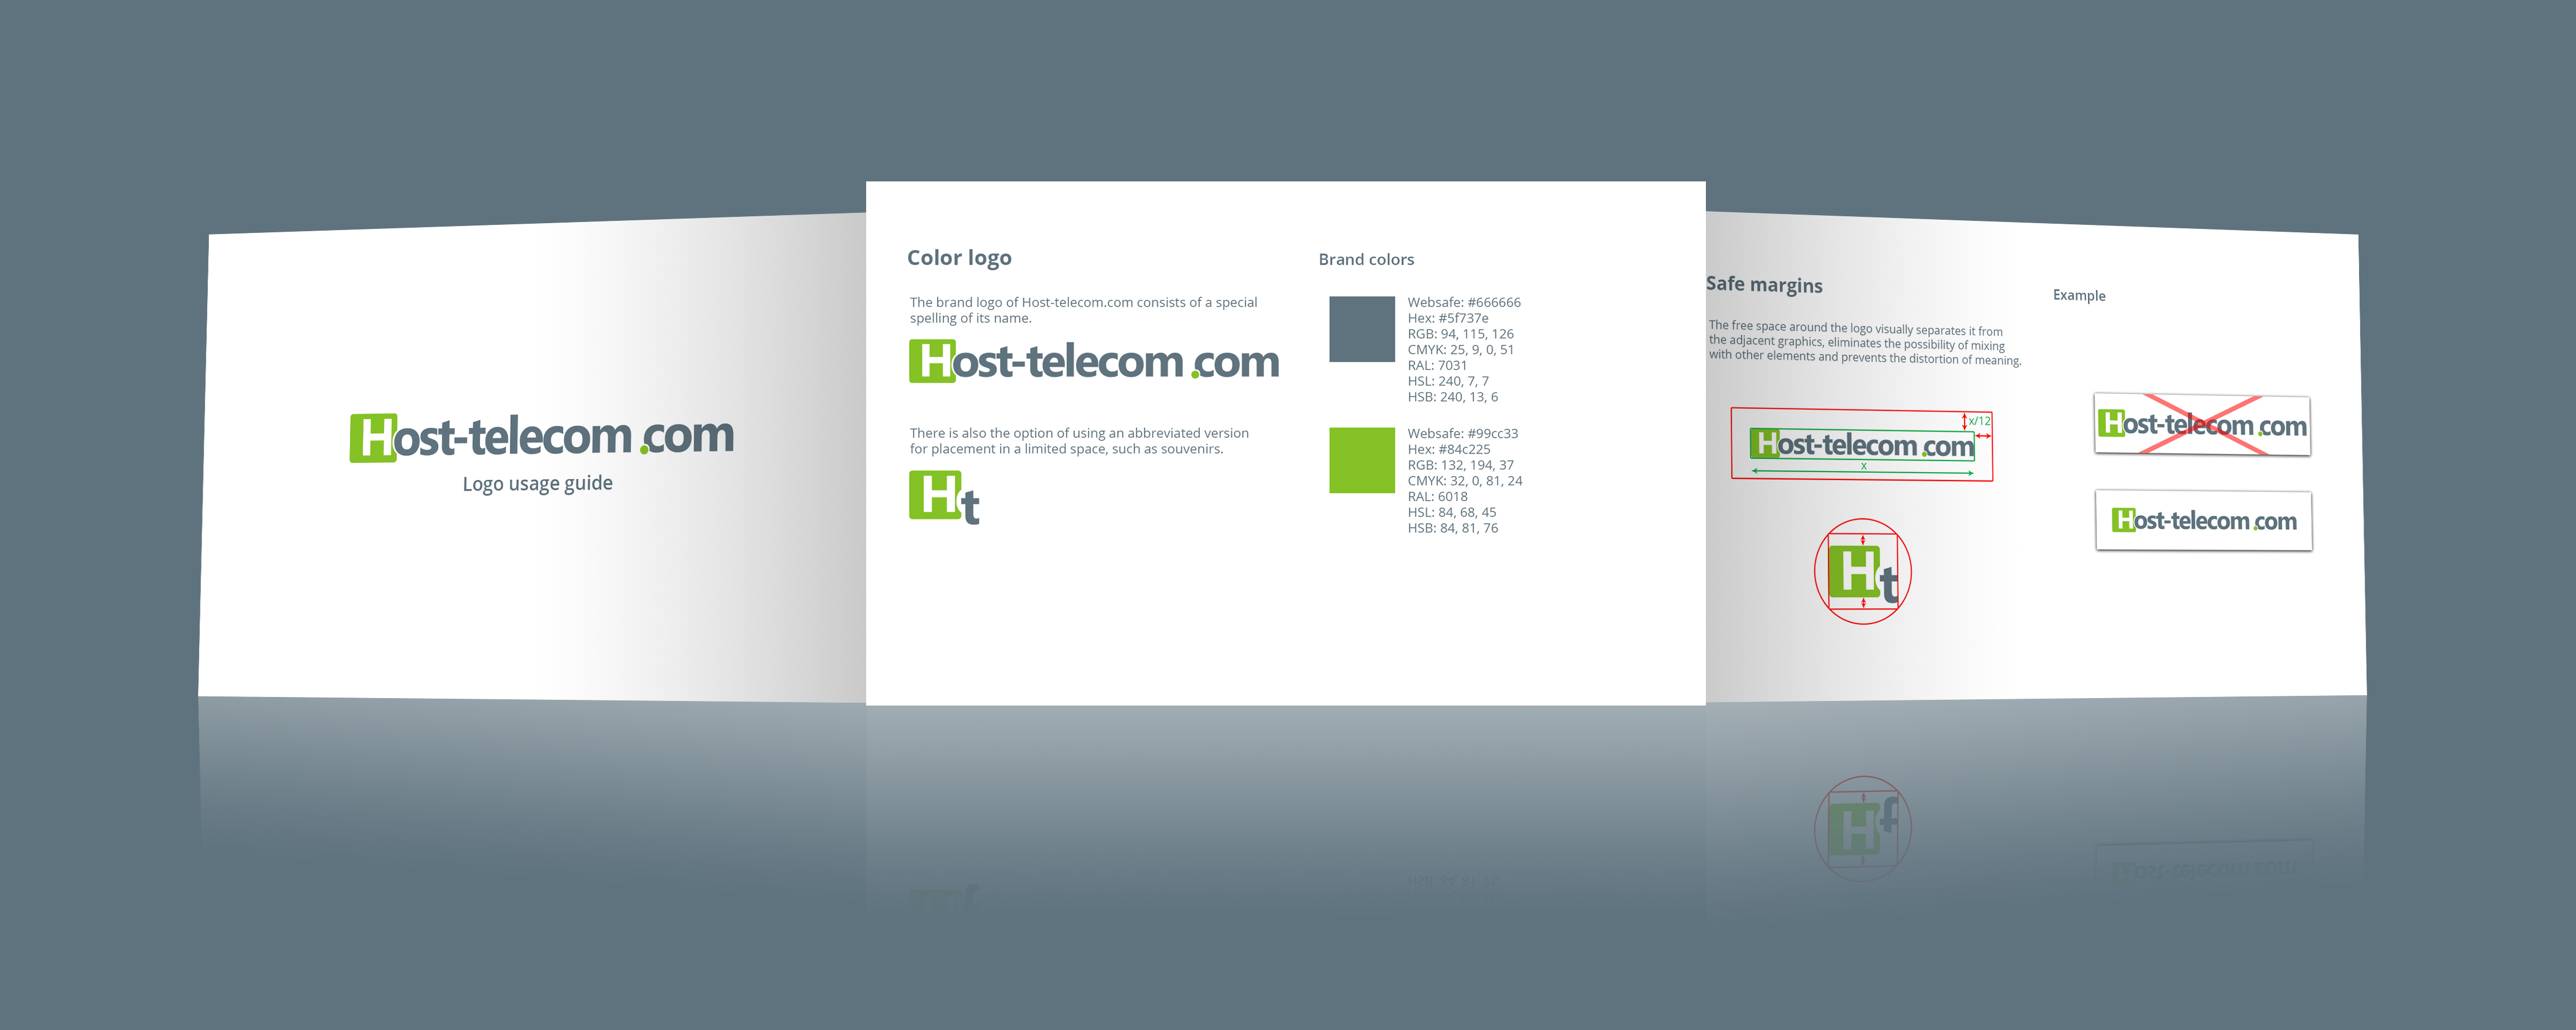 Host-telecom.com Logo Usage Guide